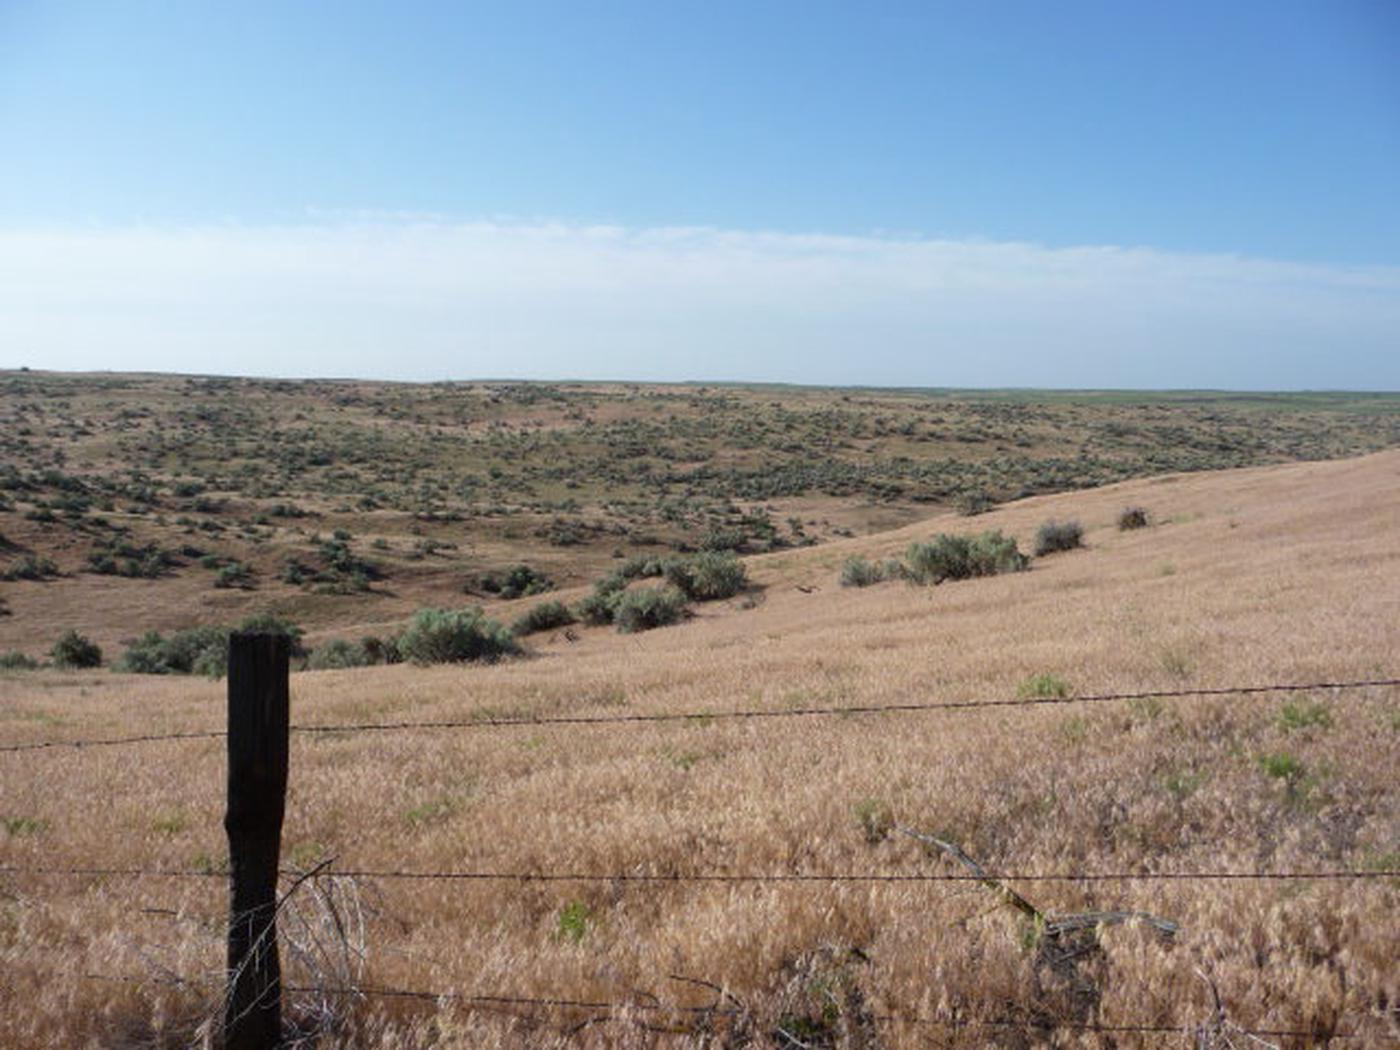 A view looking into the Juniper Dunes Wilderness